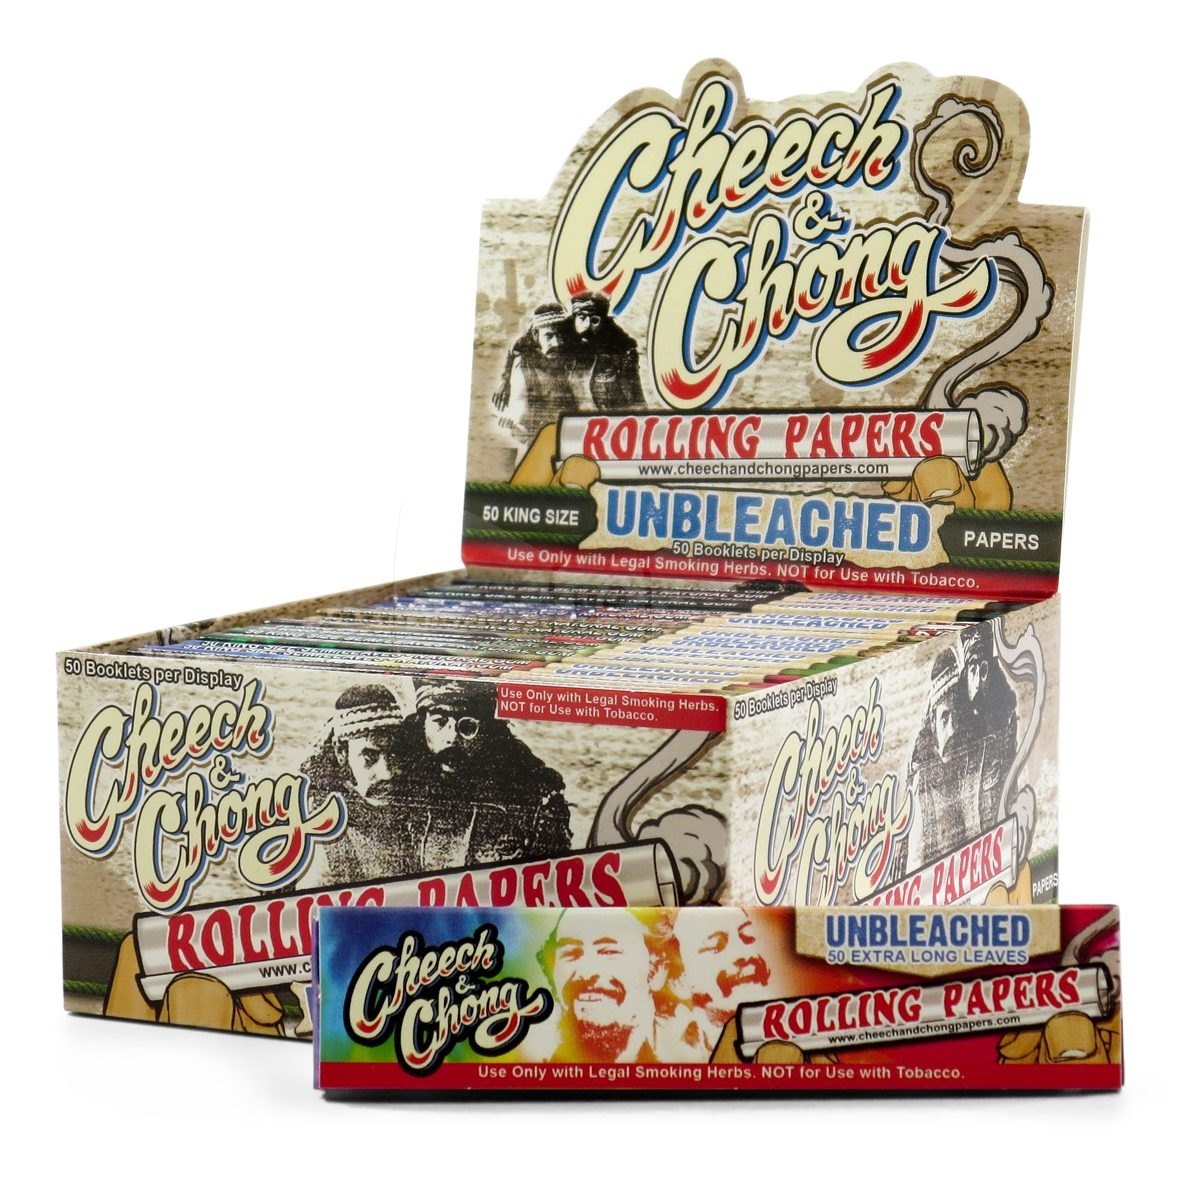 Cheech and Chong Unbleached King Size Rolling Papers Box